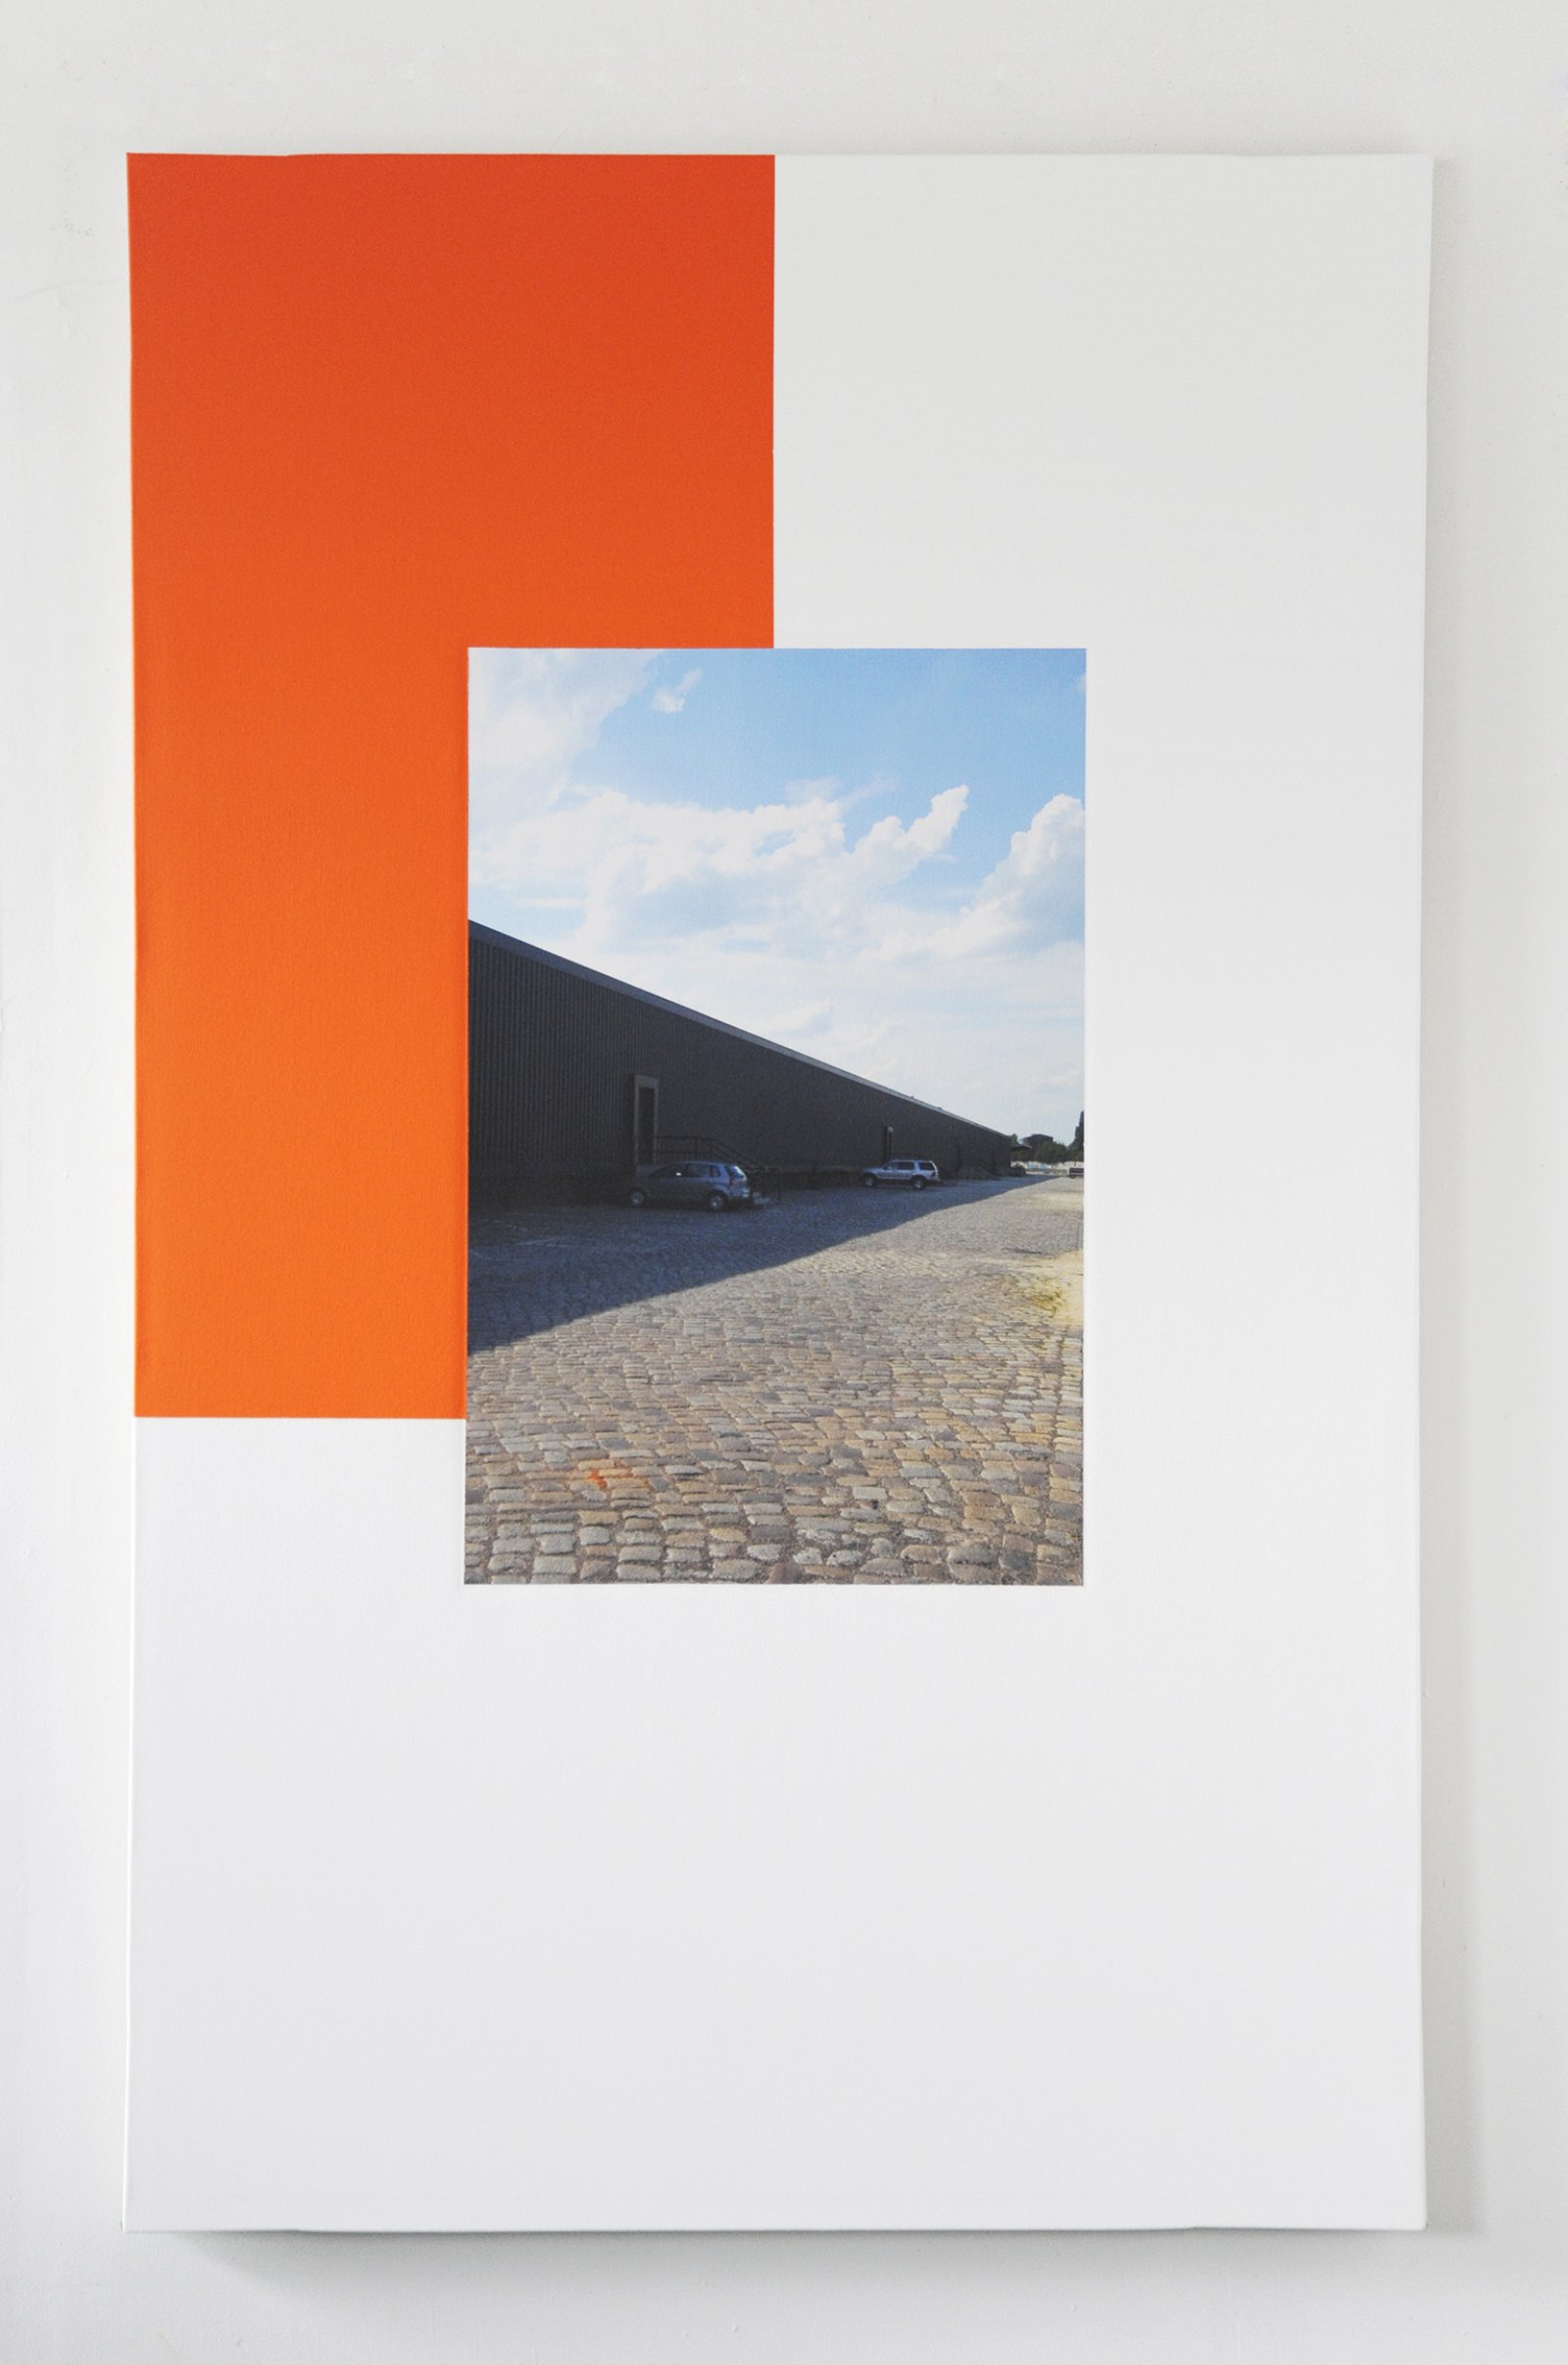 Ian Wallace,Berlin Perspective, 2009, photolaminate and acrylic on canvas,78 x 48 in. (198 x 122 cm)